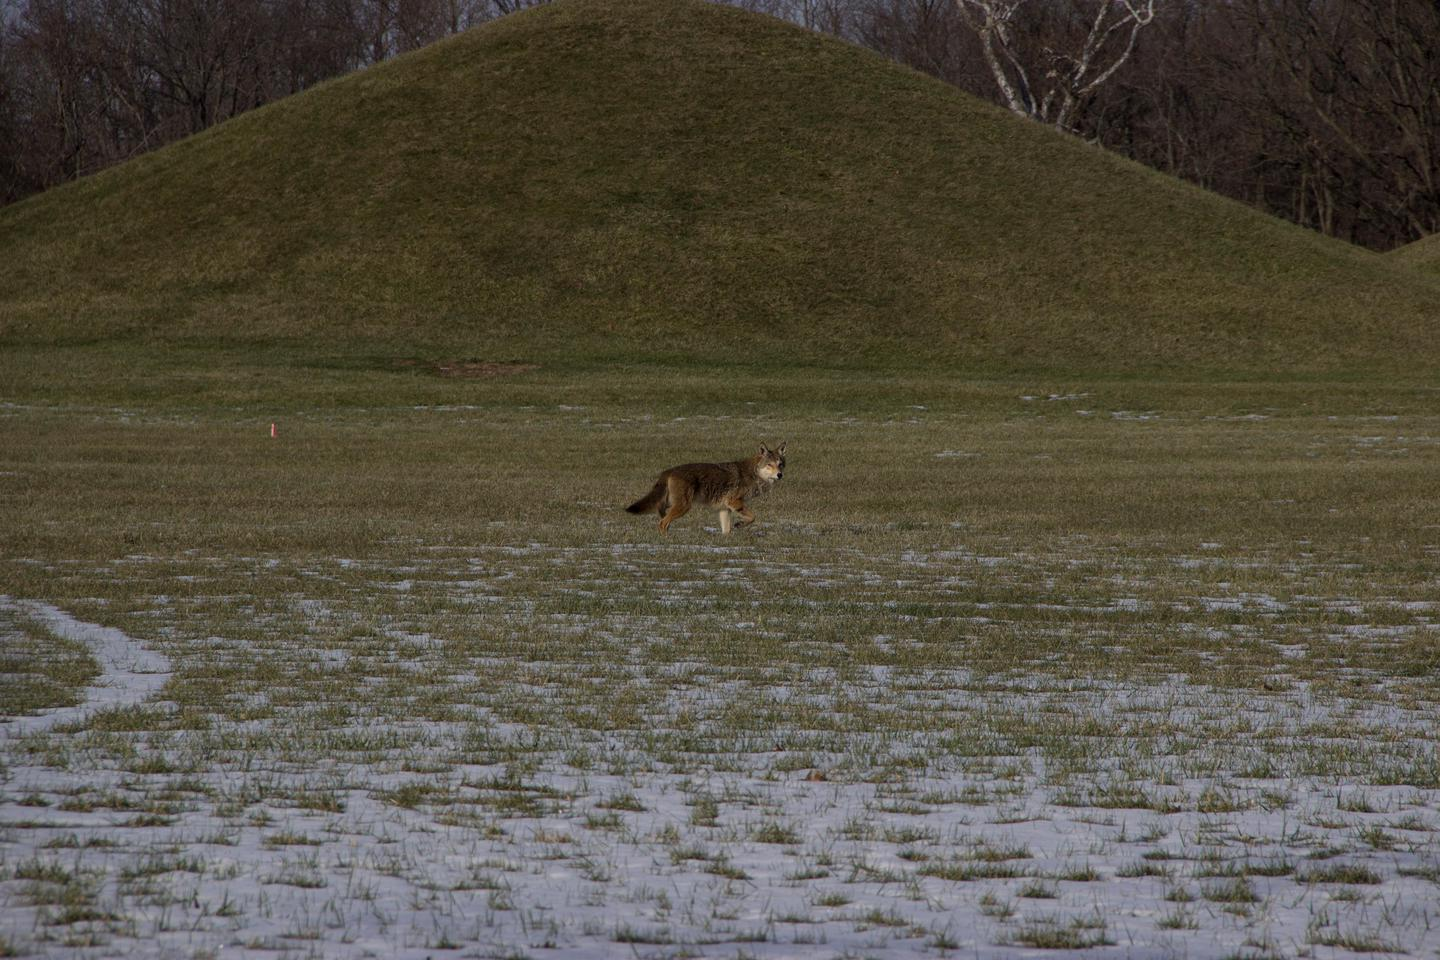 A coyote in the parkA lone coyote stares at the photographer while walking in front of a mound at Mound City Group.